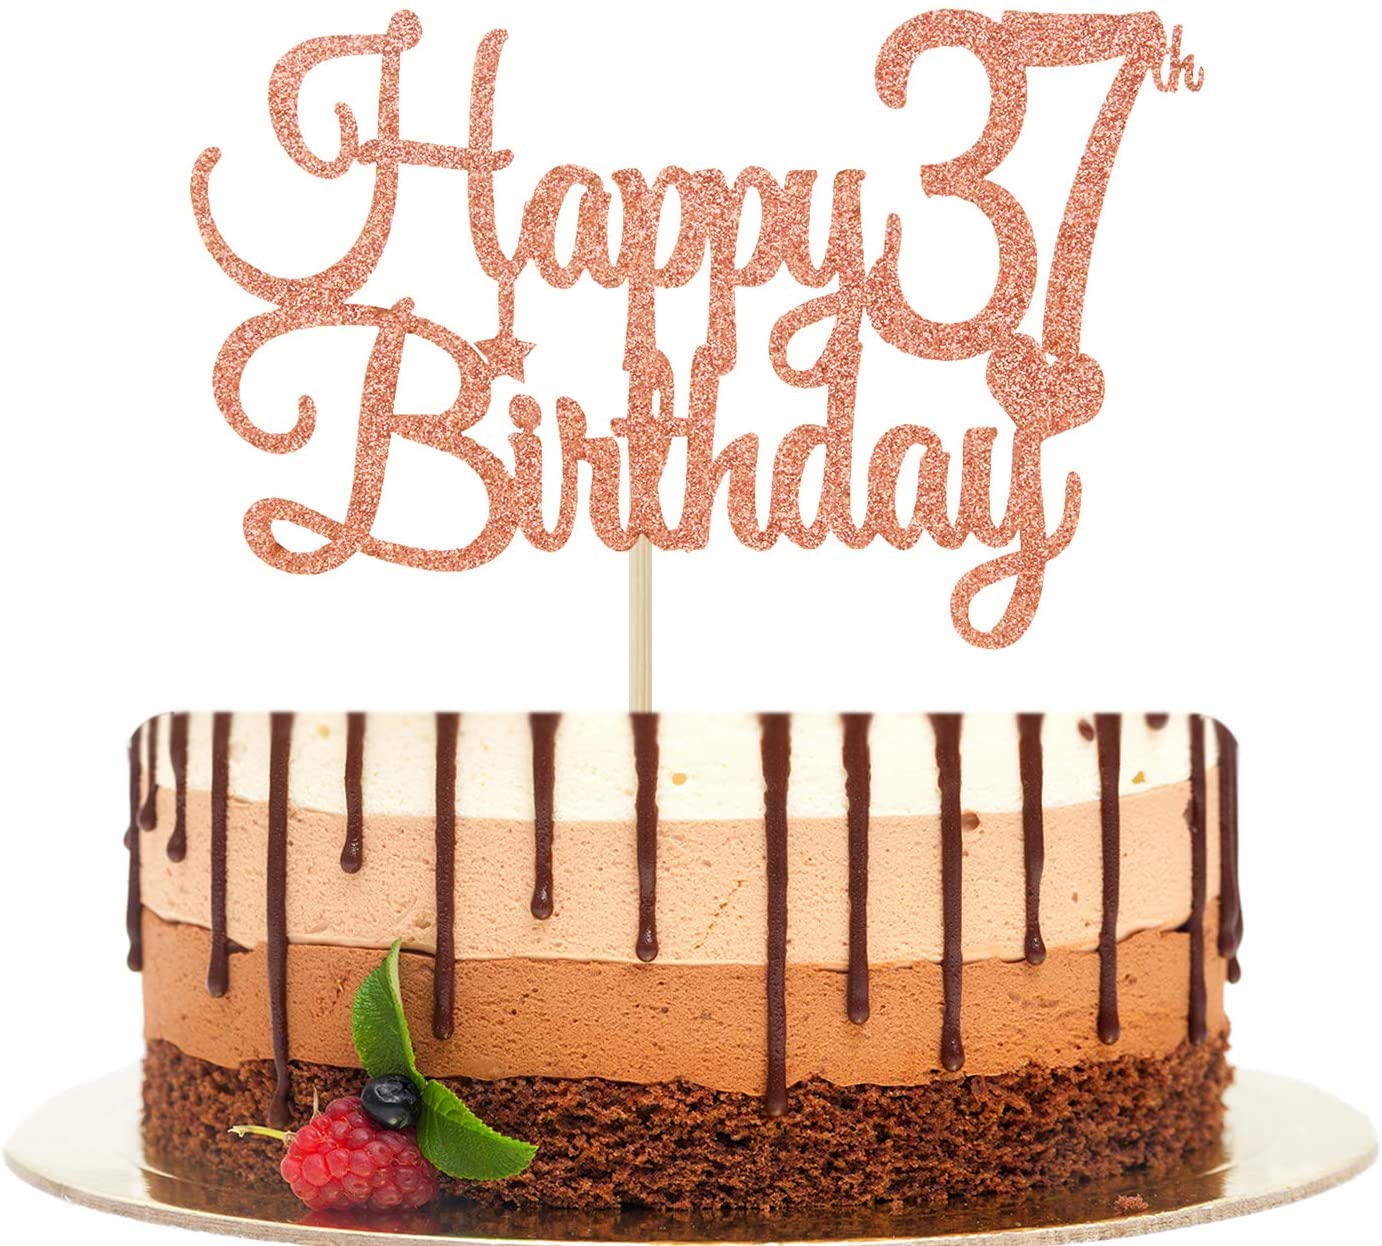 Happy 37th Birthday Cake Topper, Cheers to 37 Years, Hello 37,37th Birthday/Anniversary Party Decorations Rose Gold Glitter.